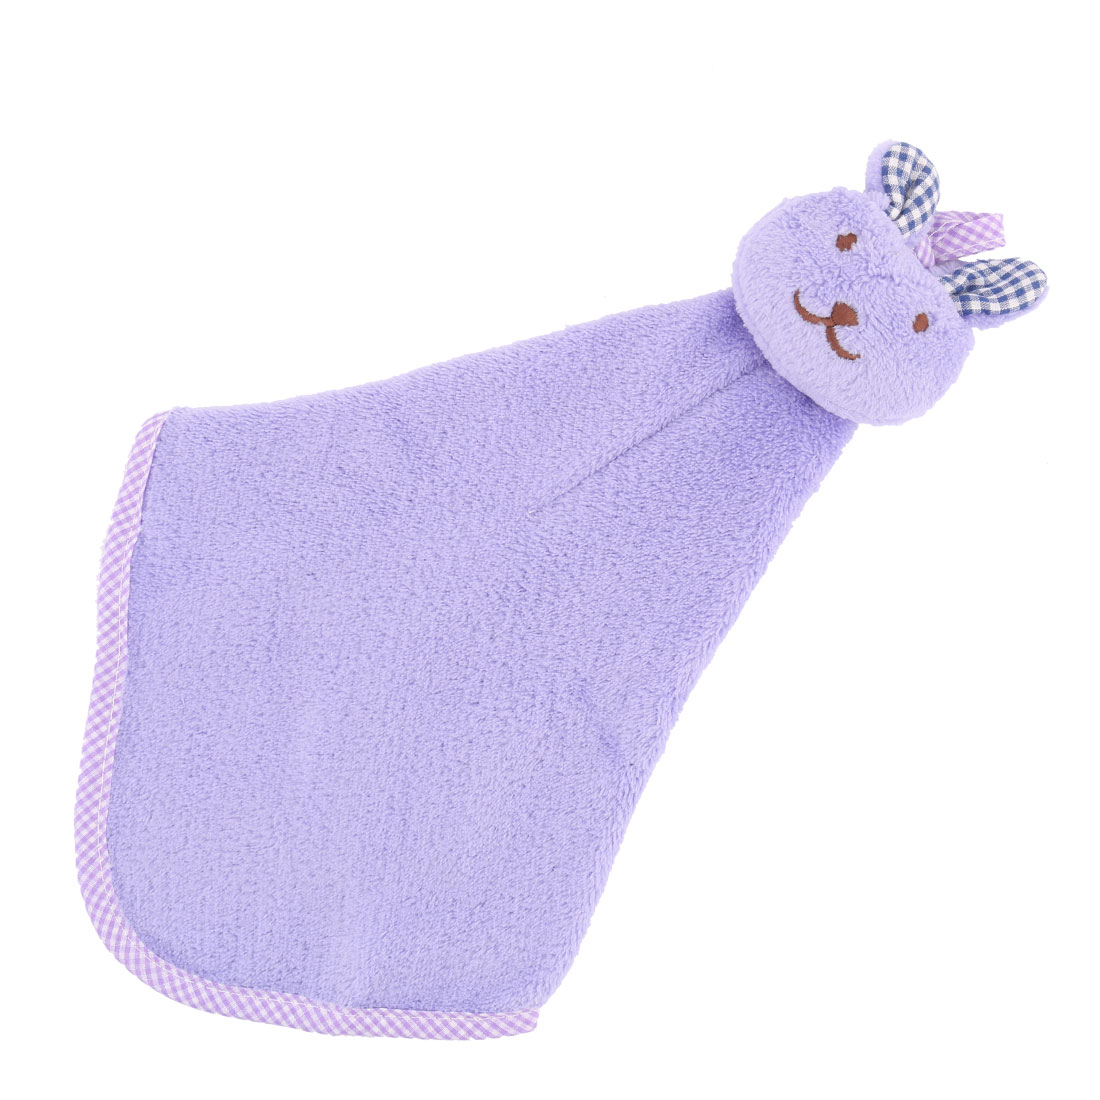 Apartment Rabbit Design Terry Wall Hanging Cleaning Hand Dry Towel Washcloth Light Purple